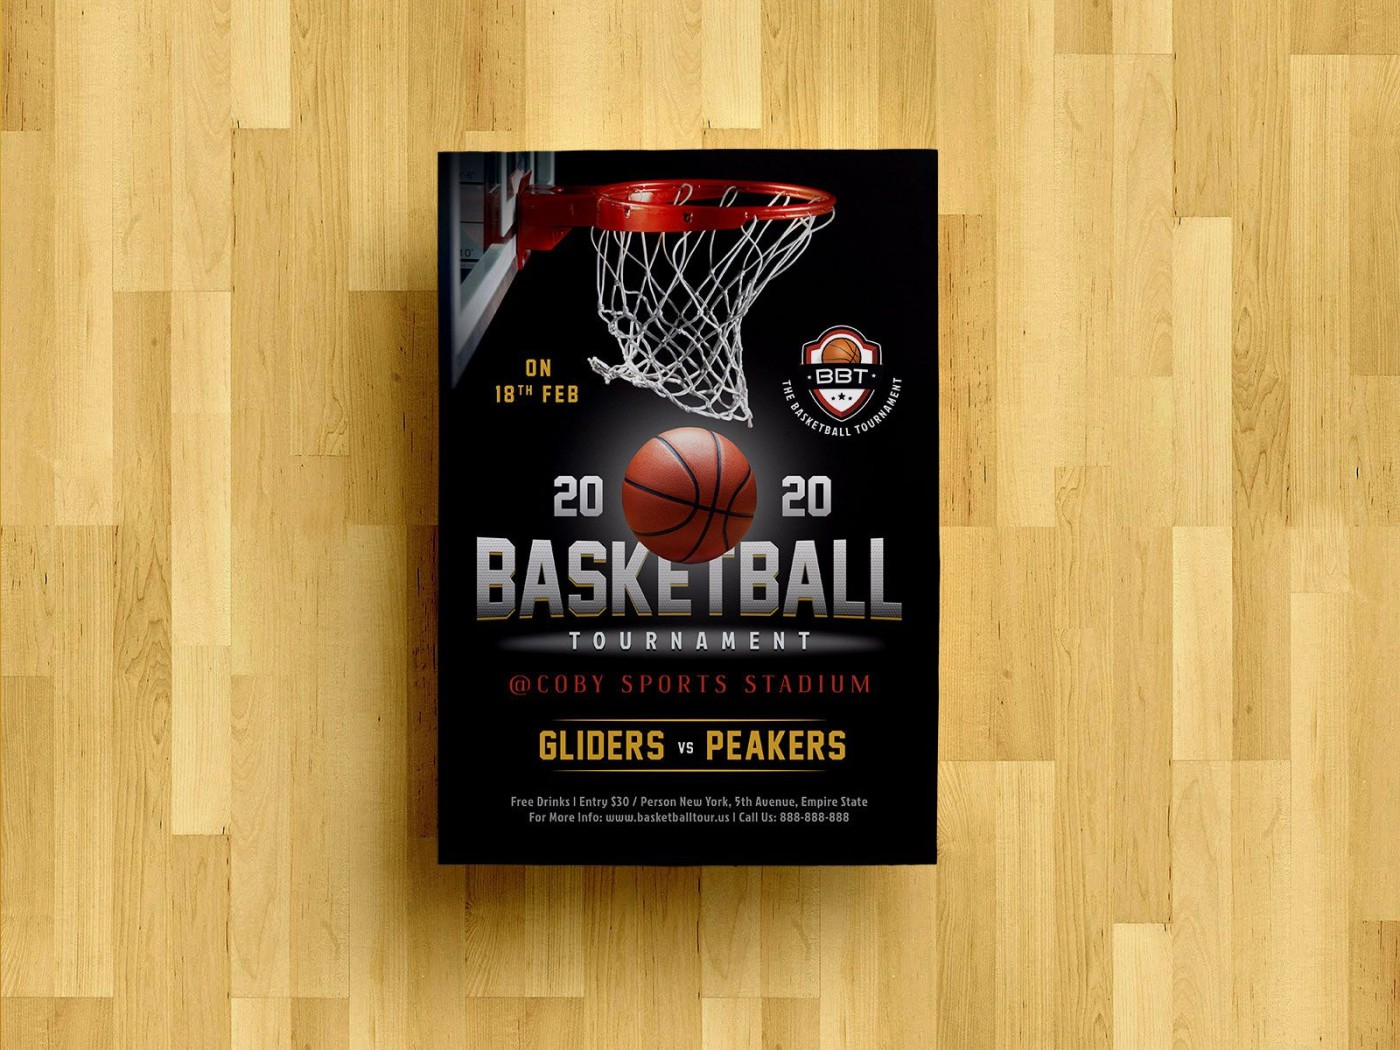 008 Singular Free Basketball Flyer Template Photo  Game 3 On Tournament Word1400